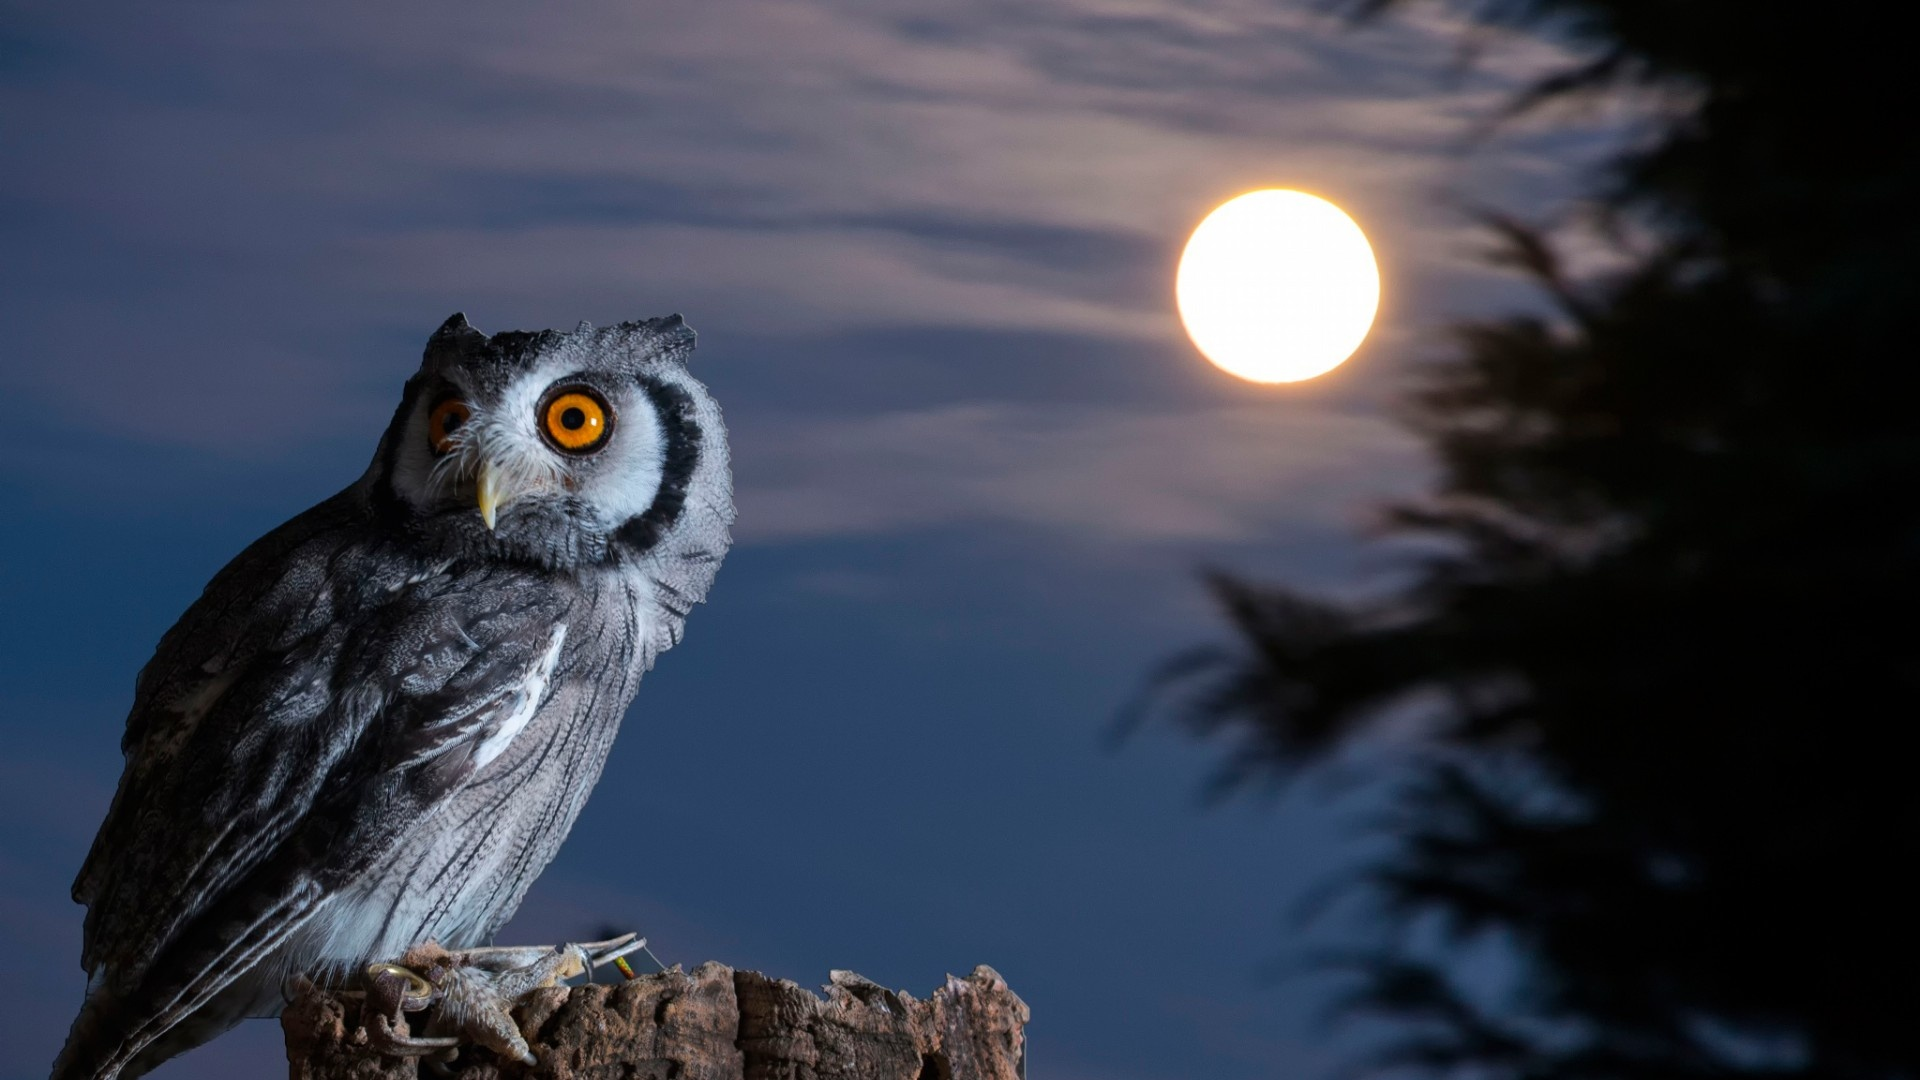 Night Owl Moon Hd Wallpaper Desktop Wallpapers 4k High Definition